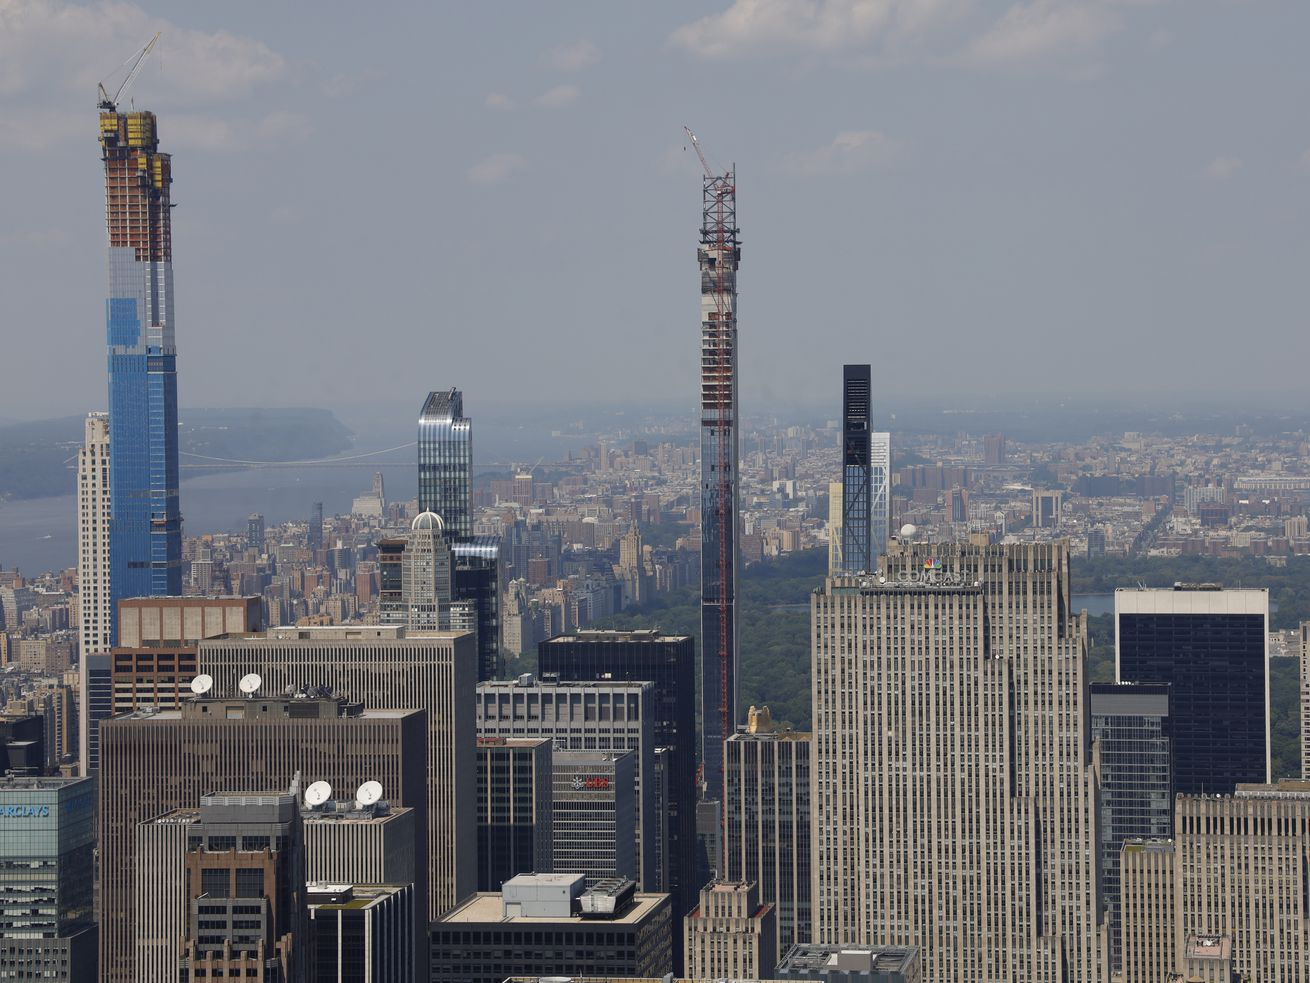 Three supertall, skinny skyscrapers jut out of the midtown skyline.